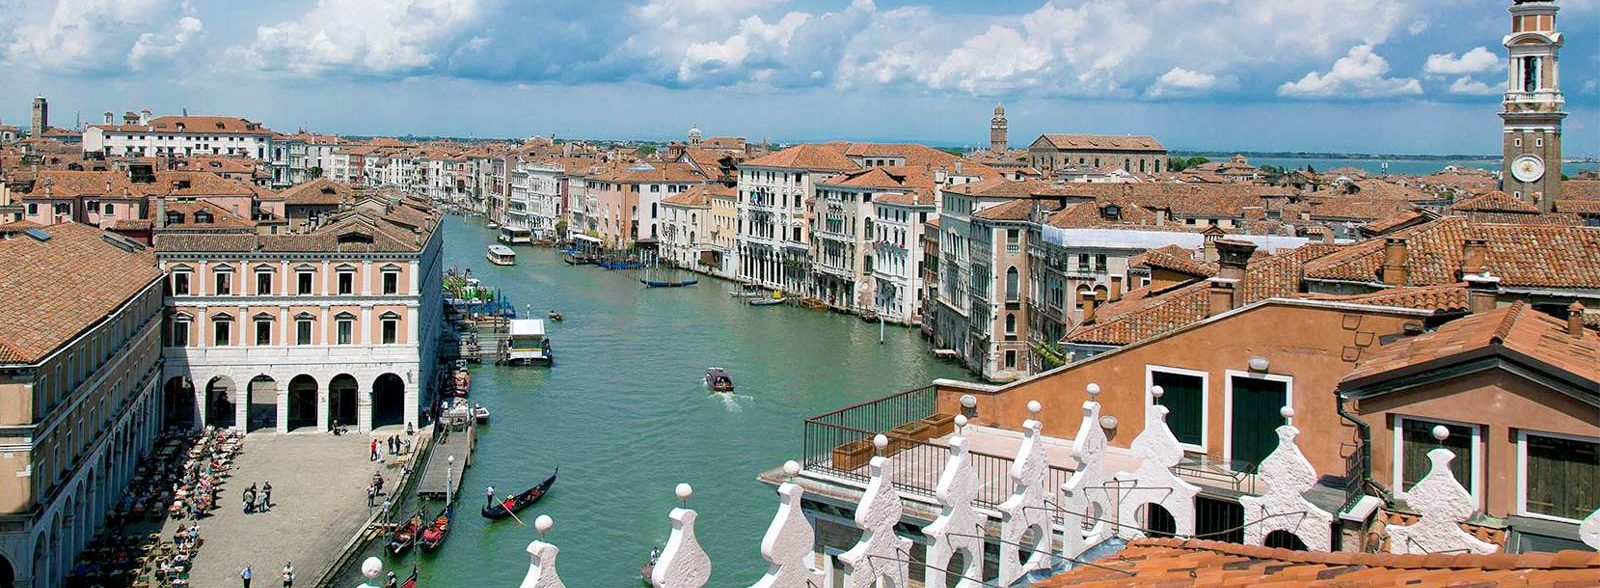 Venice in 2 days: things you must not miss